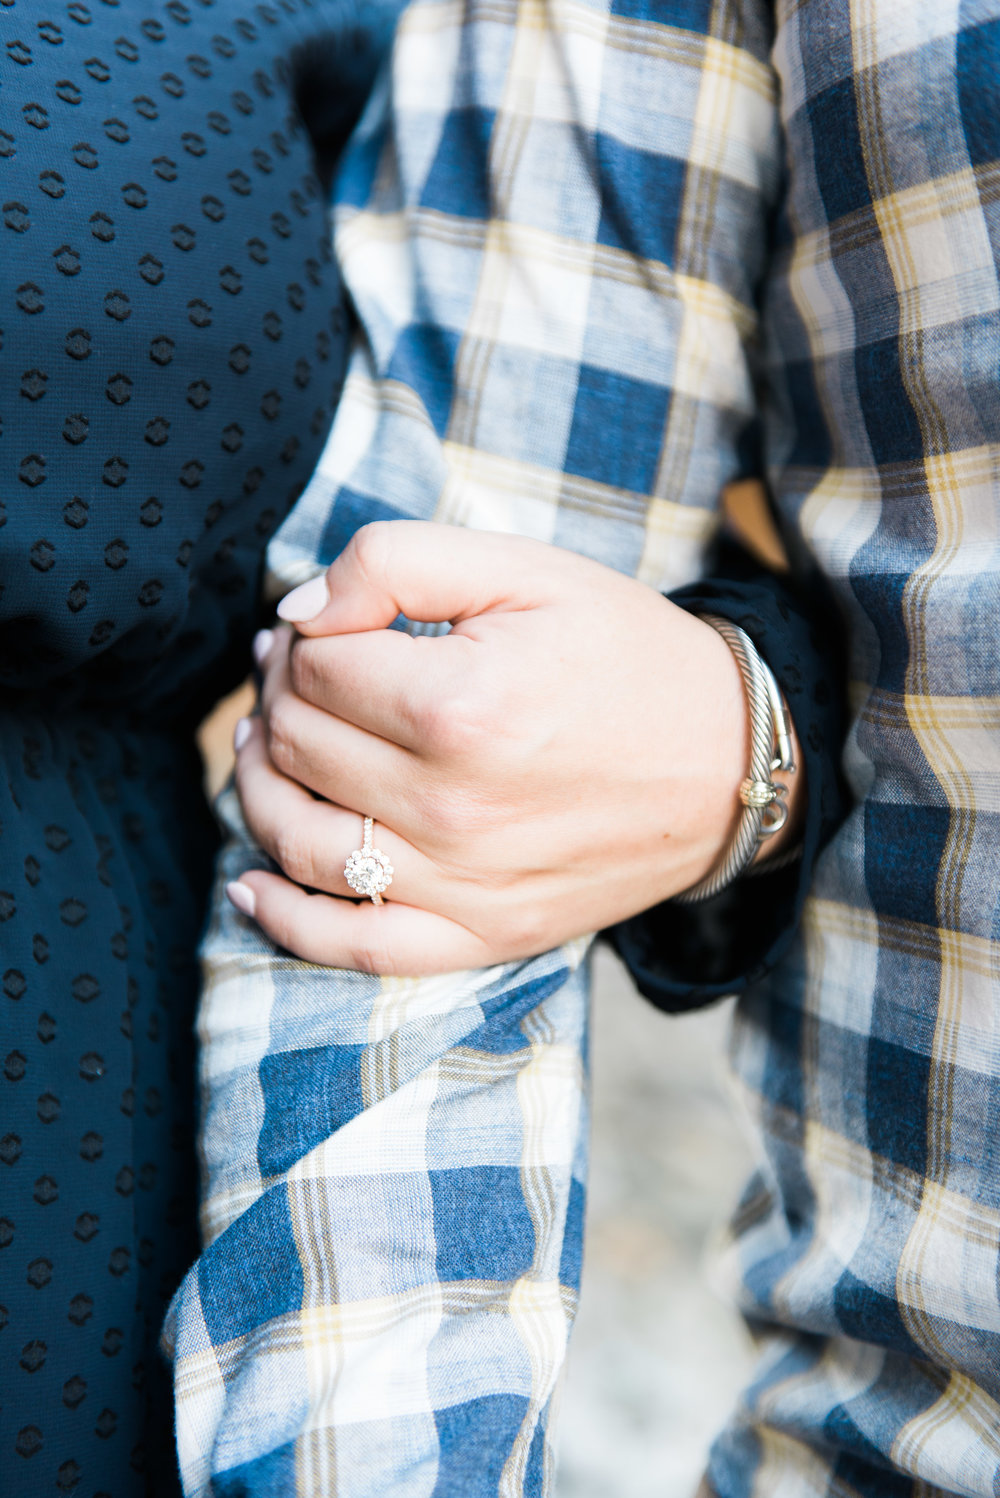 atlanta beltline engagement ring